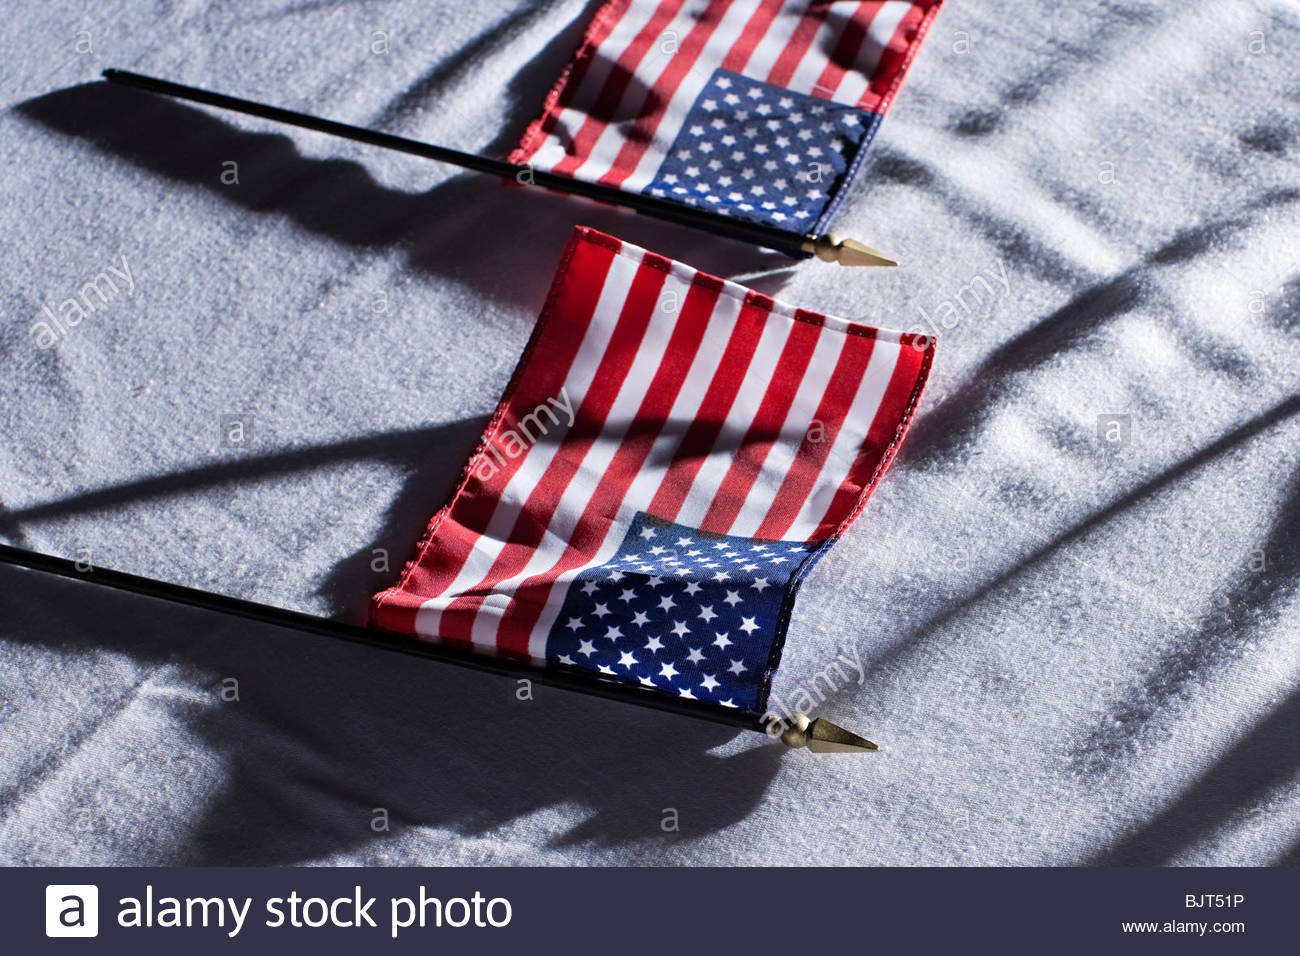 American flags - Stock Image